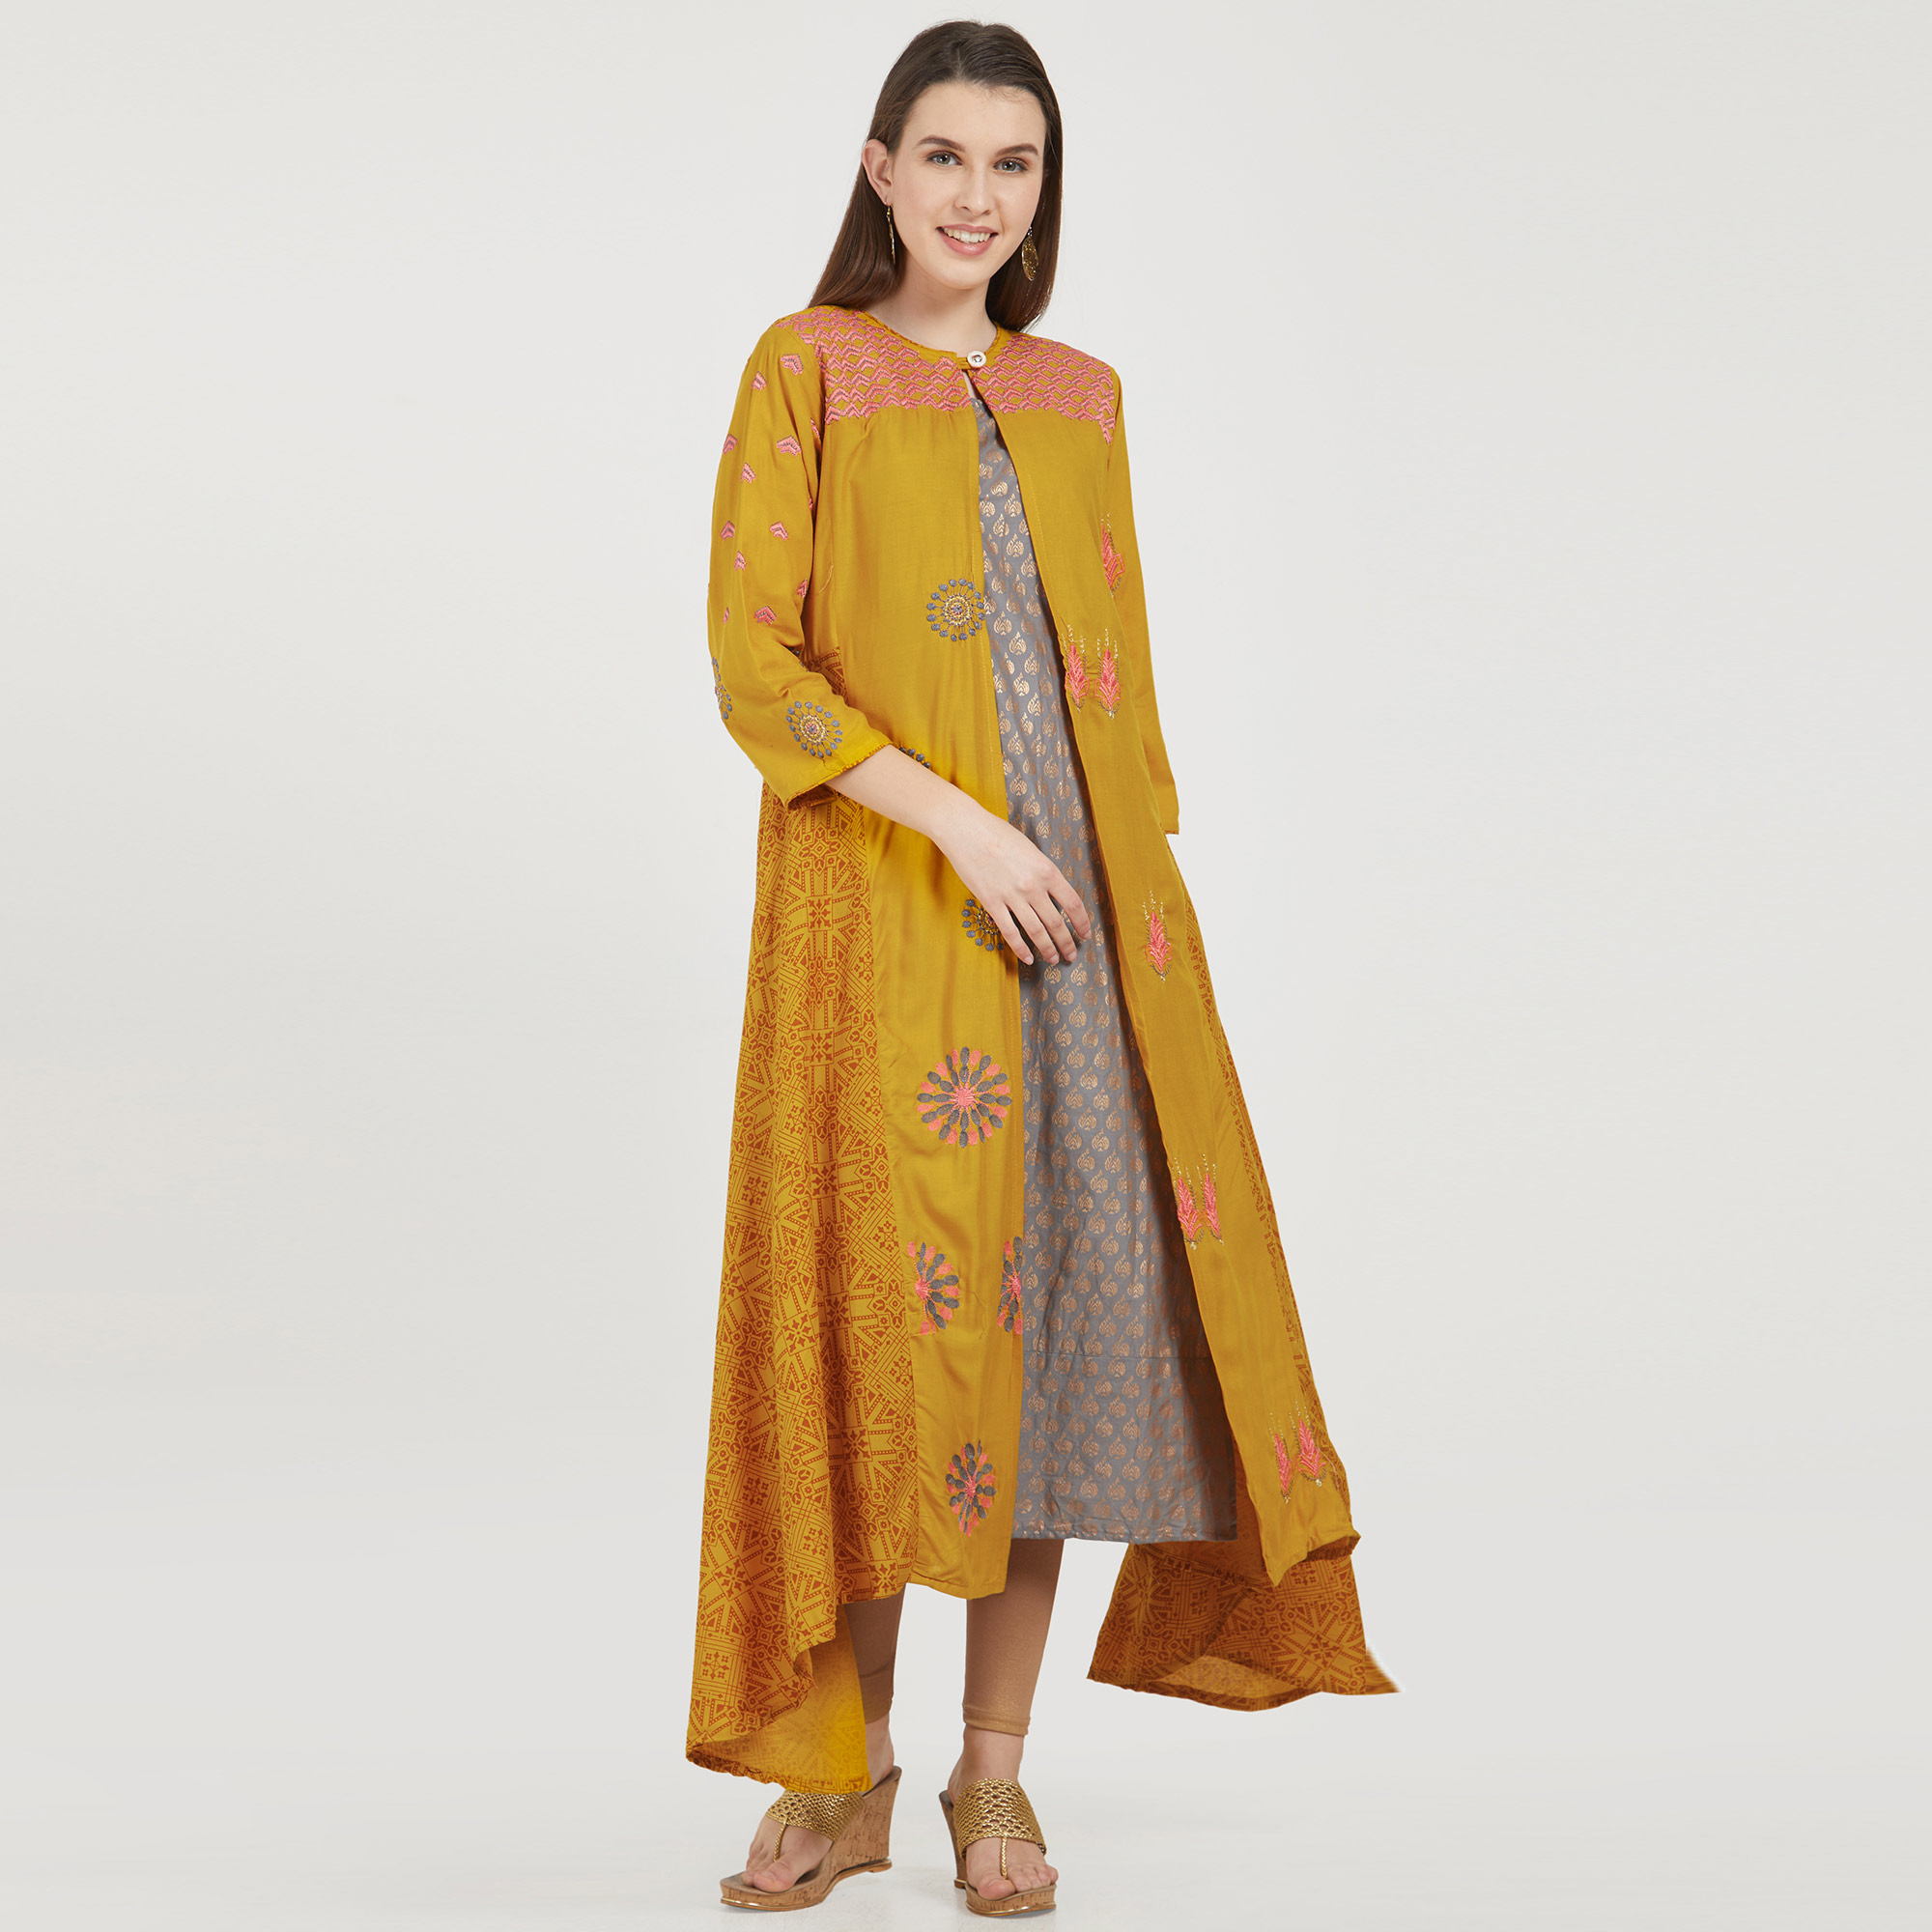 Pleasant Mustard Yellow-Gray Colored Partywear Printed Jacket Style Rayon-Cotton Kurti